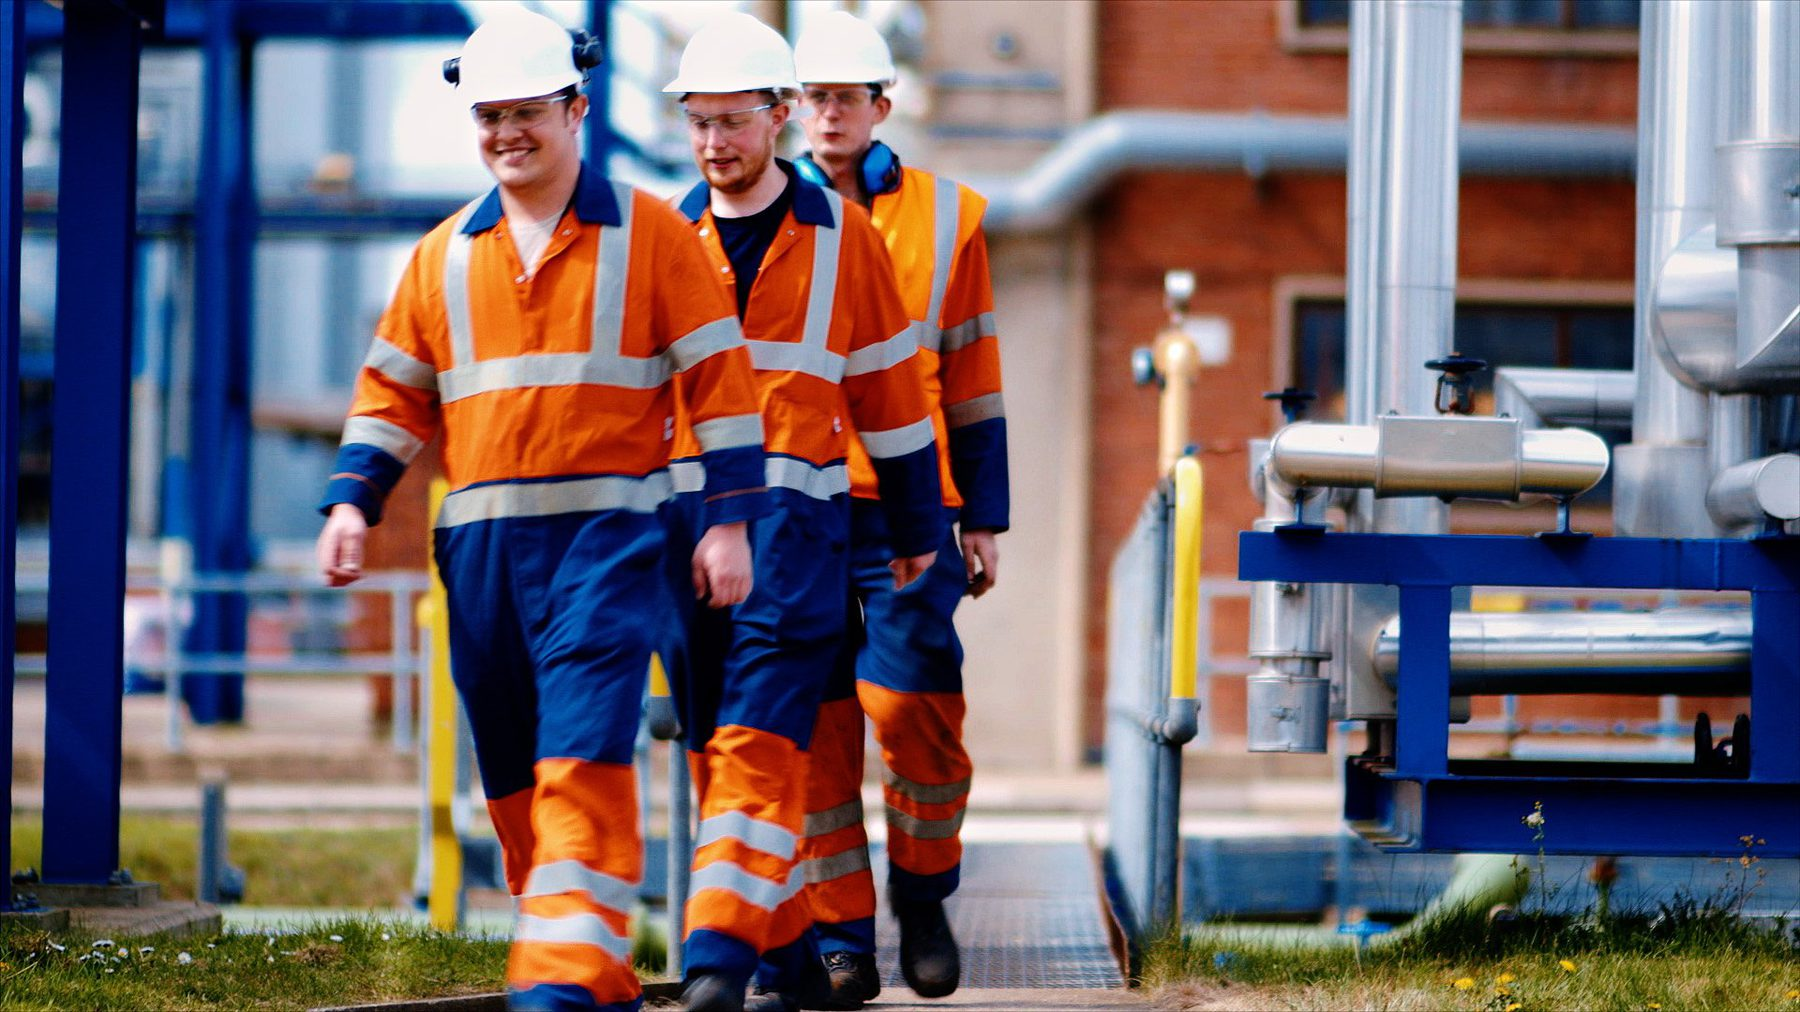 Company Image (Briar Chemicals: Men in High-vis, on site)